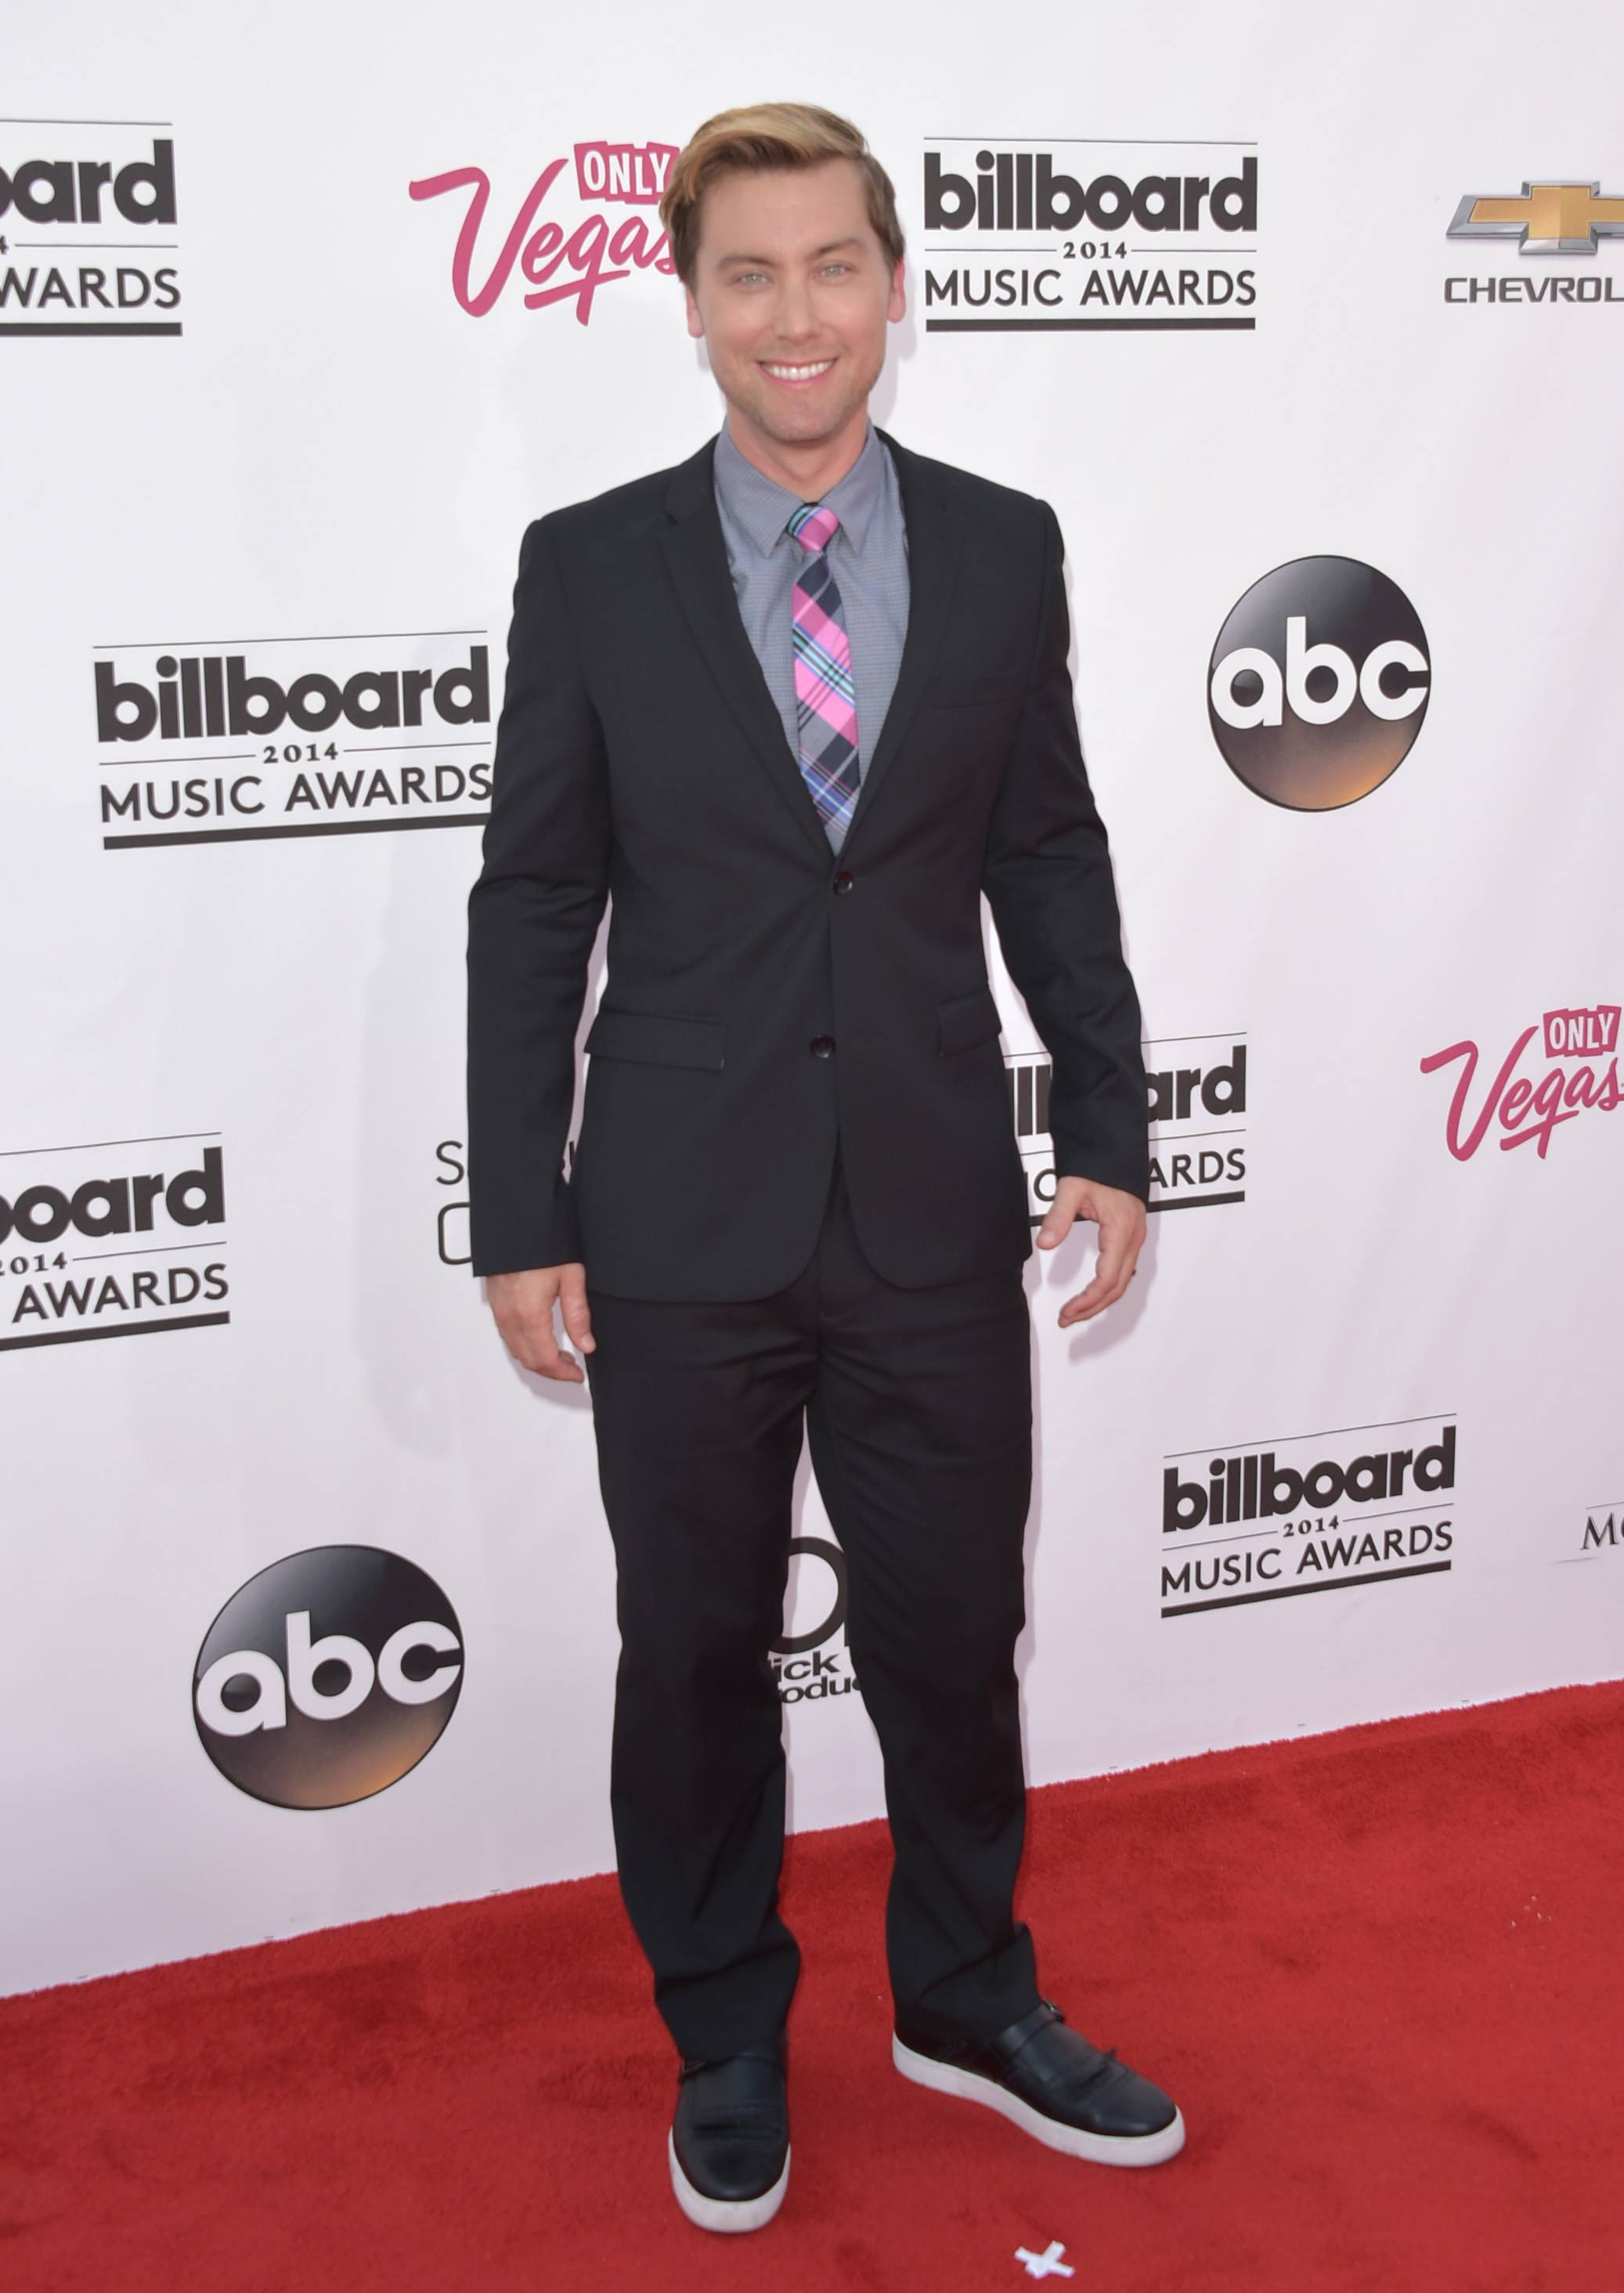 Lance Bass arrives at the Billboard Music Awards at the MGM Grand Garden Arena on Sunday, May 18, 2014, in Las Vegas.